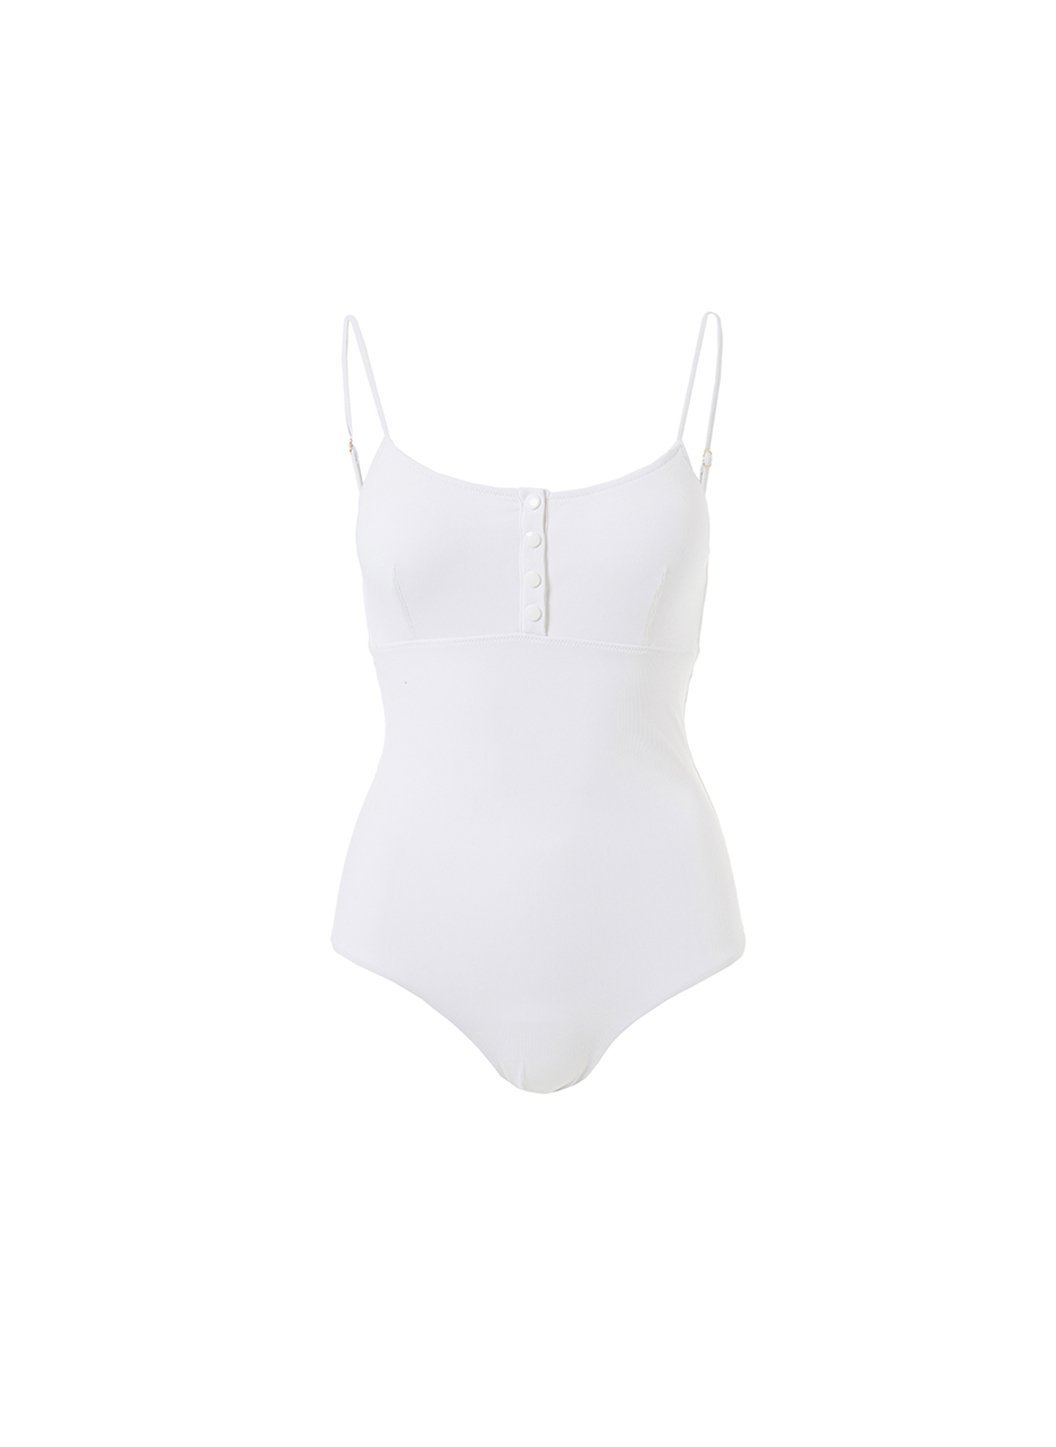 calabasas white ribbed overtheshoulder popper onepiece swimsuit 2019